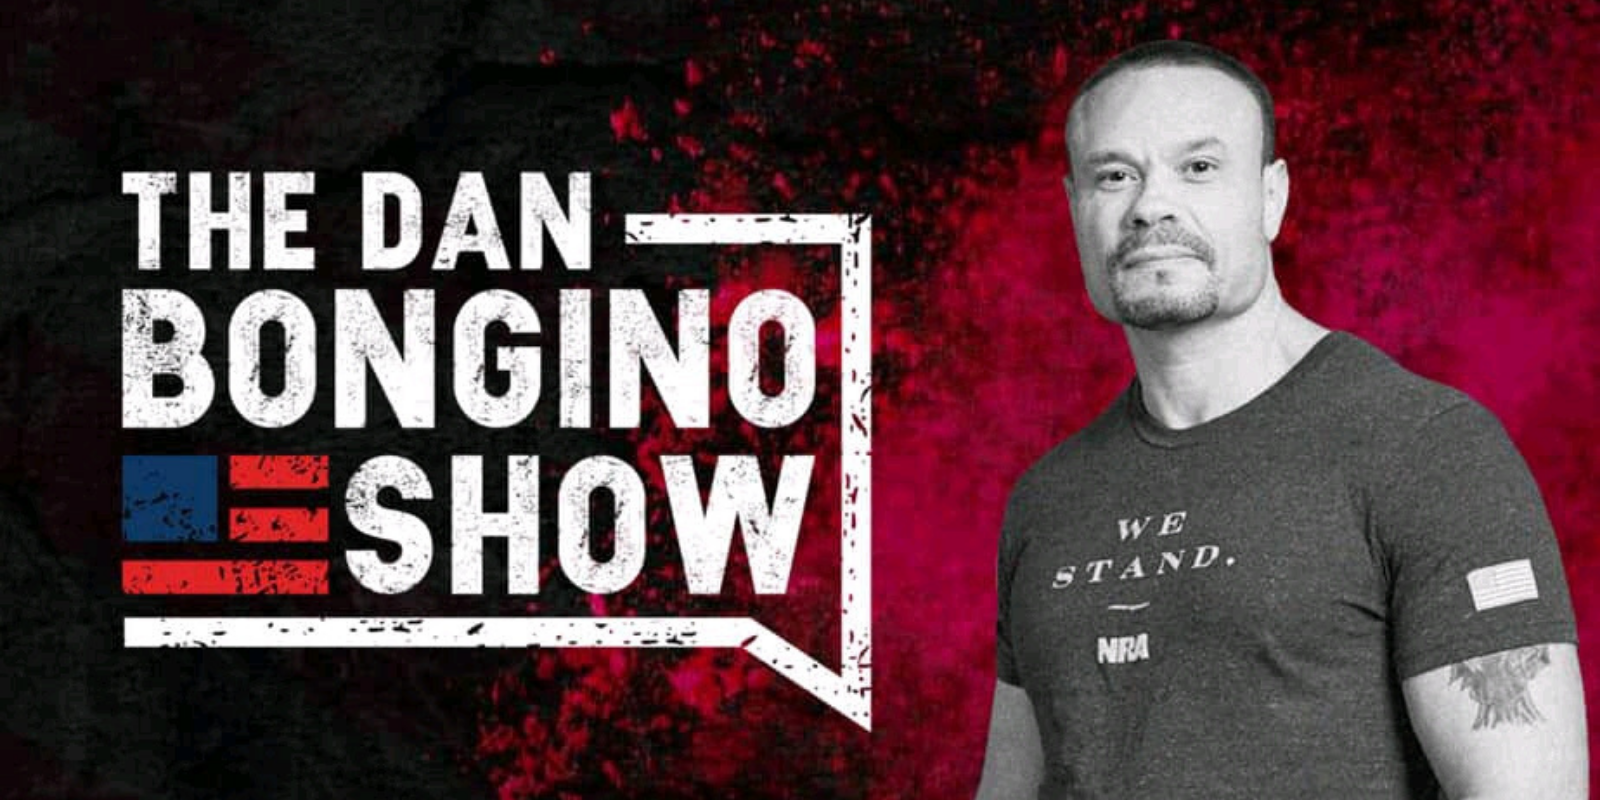 The Dan Bongino Show rockets to top of American podcast chart